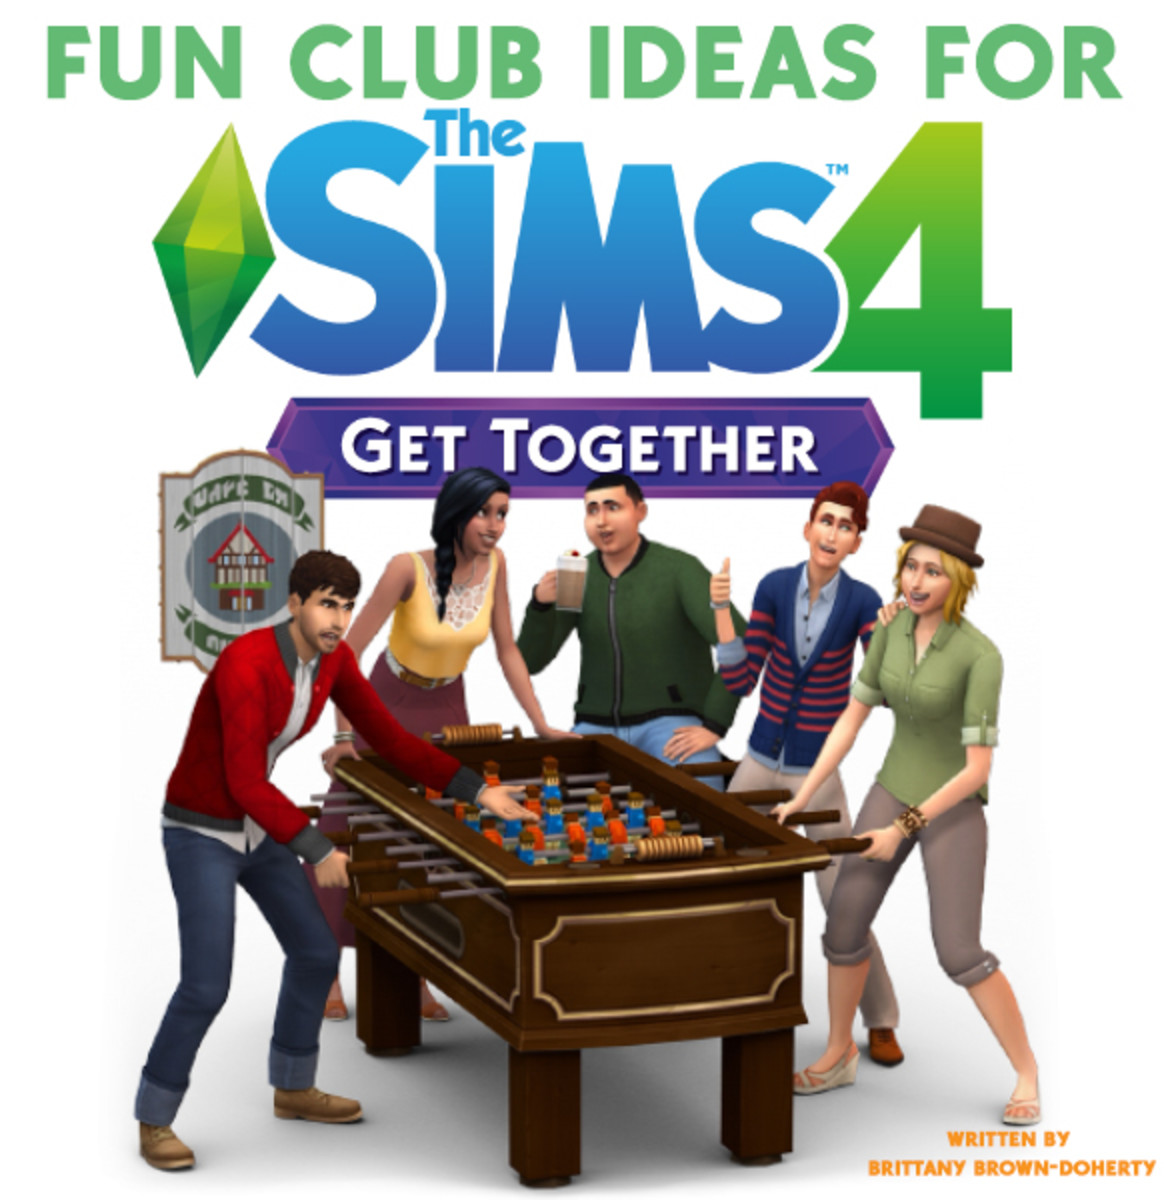 Fun Club Ideas for